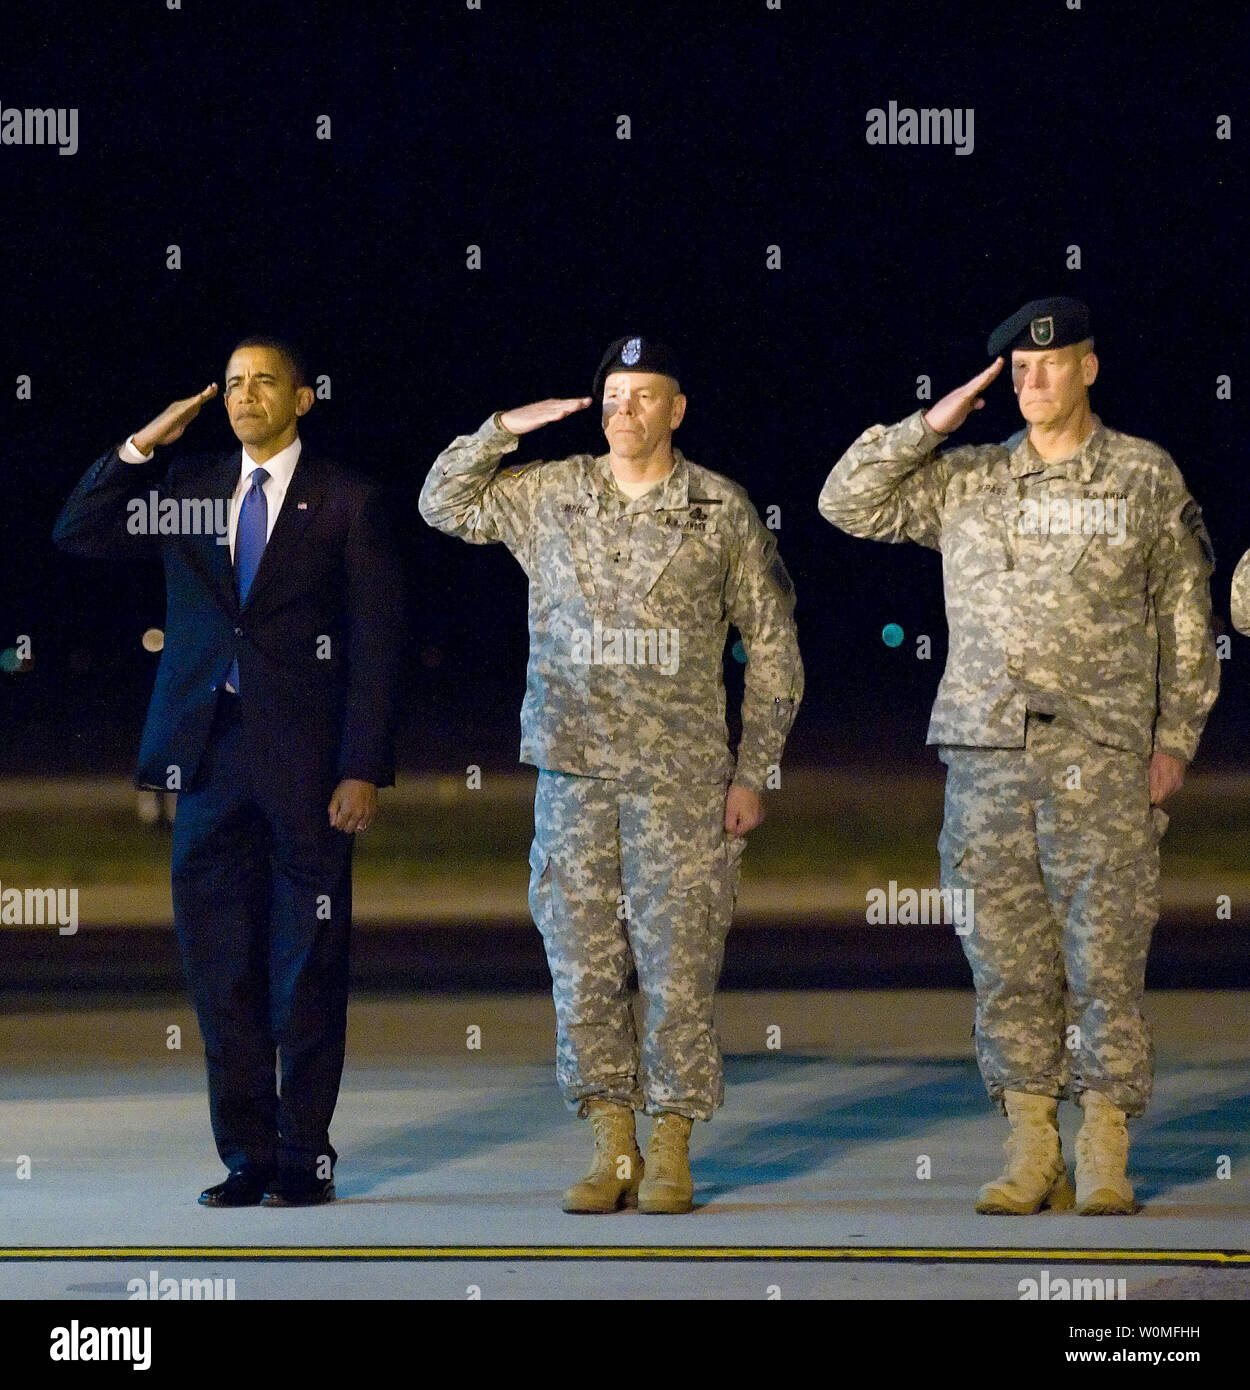 President Barack Obama, Army Maj. Gen. Daniel V. Wright, and Army Brig. Gen. Michael S. Repass render honors during as a team of Soldiers carry the remains of Sgt. Dale R. Griffin during a dignified transfer ceremony at Dover Air Force Base, Delaware on October 29, 2009. Griffin, who was assigned to 1st Battalion, 17th Infantry Regiment, 5th Stryker Brigade Combat Team, 2nd Infantry Division, was killed in action on October 27, 2009, by a roadside bomb in the Kandahar province of Afghanistan. UPI/Jason Minto/U.S. Air Force Stock Photo